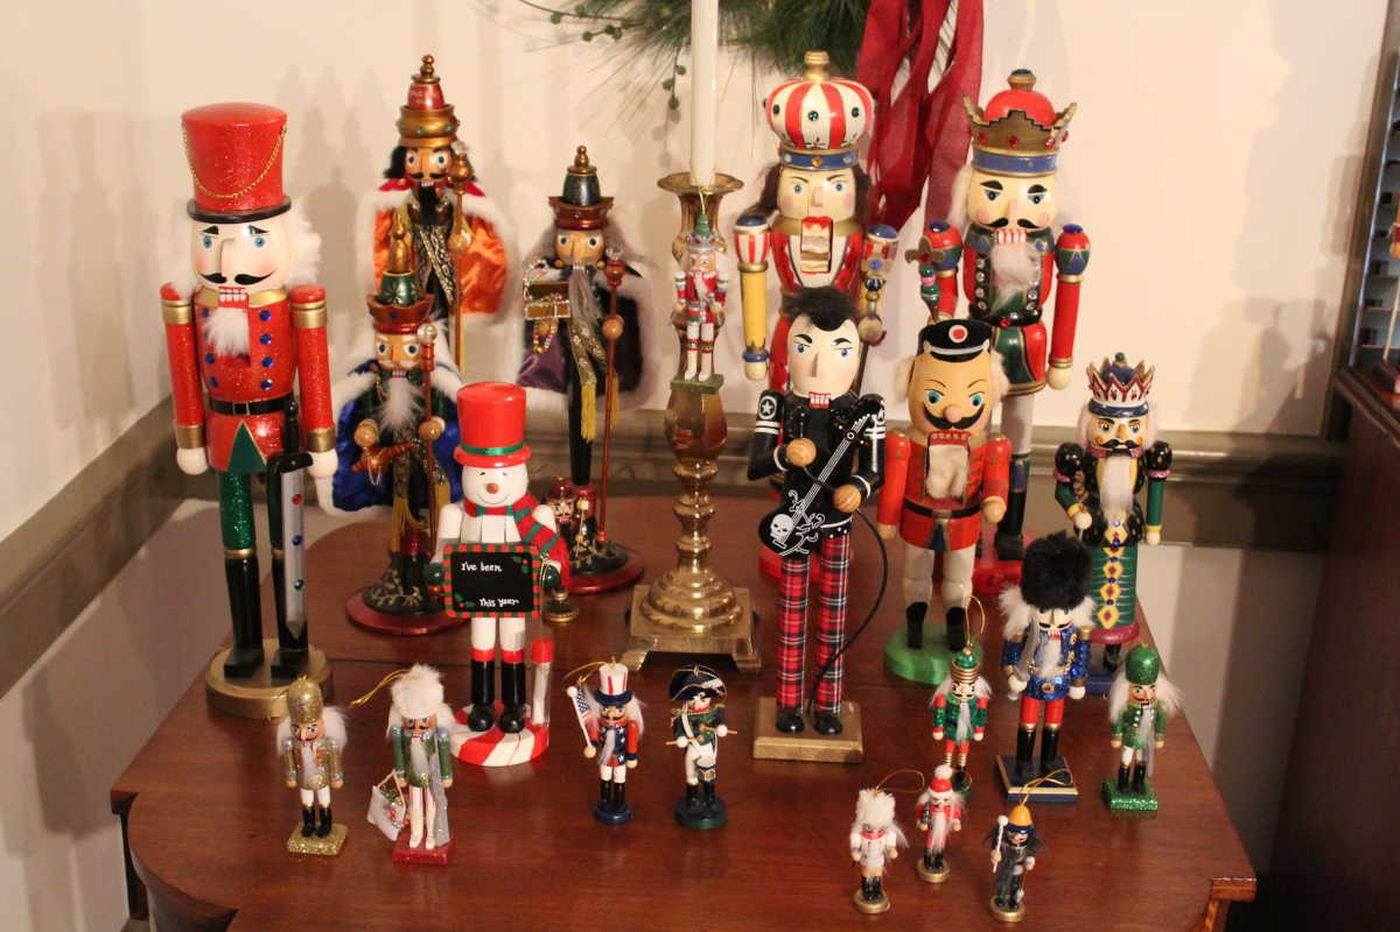 This historic Delaware site gathered 160 nutcrackers to celebrate the classic Christmas tale's 200th birthday